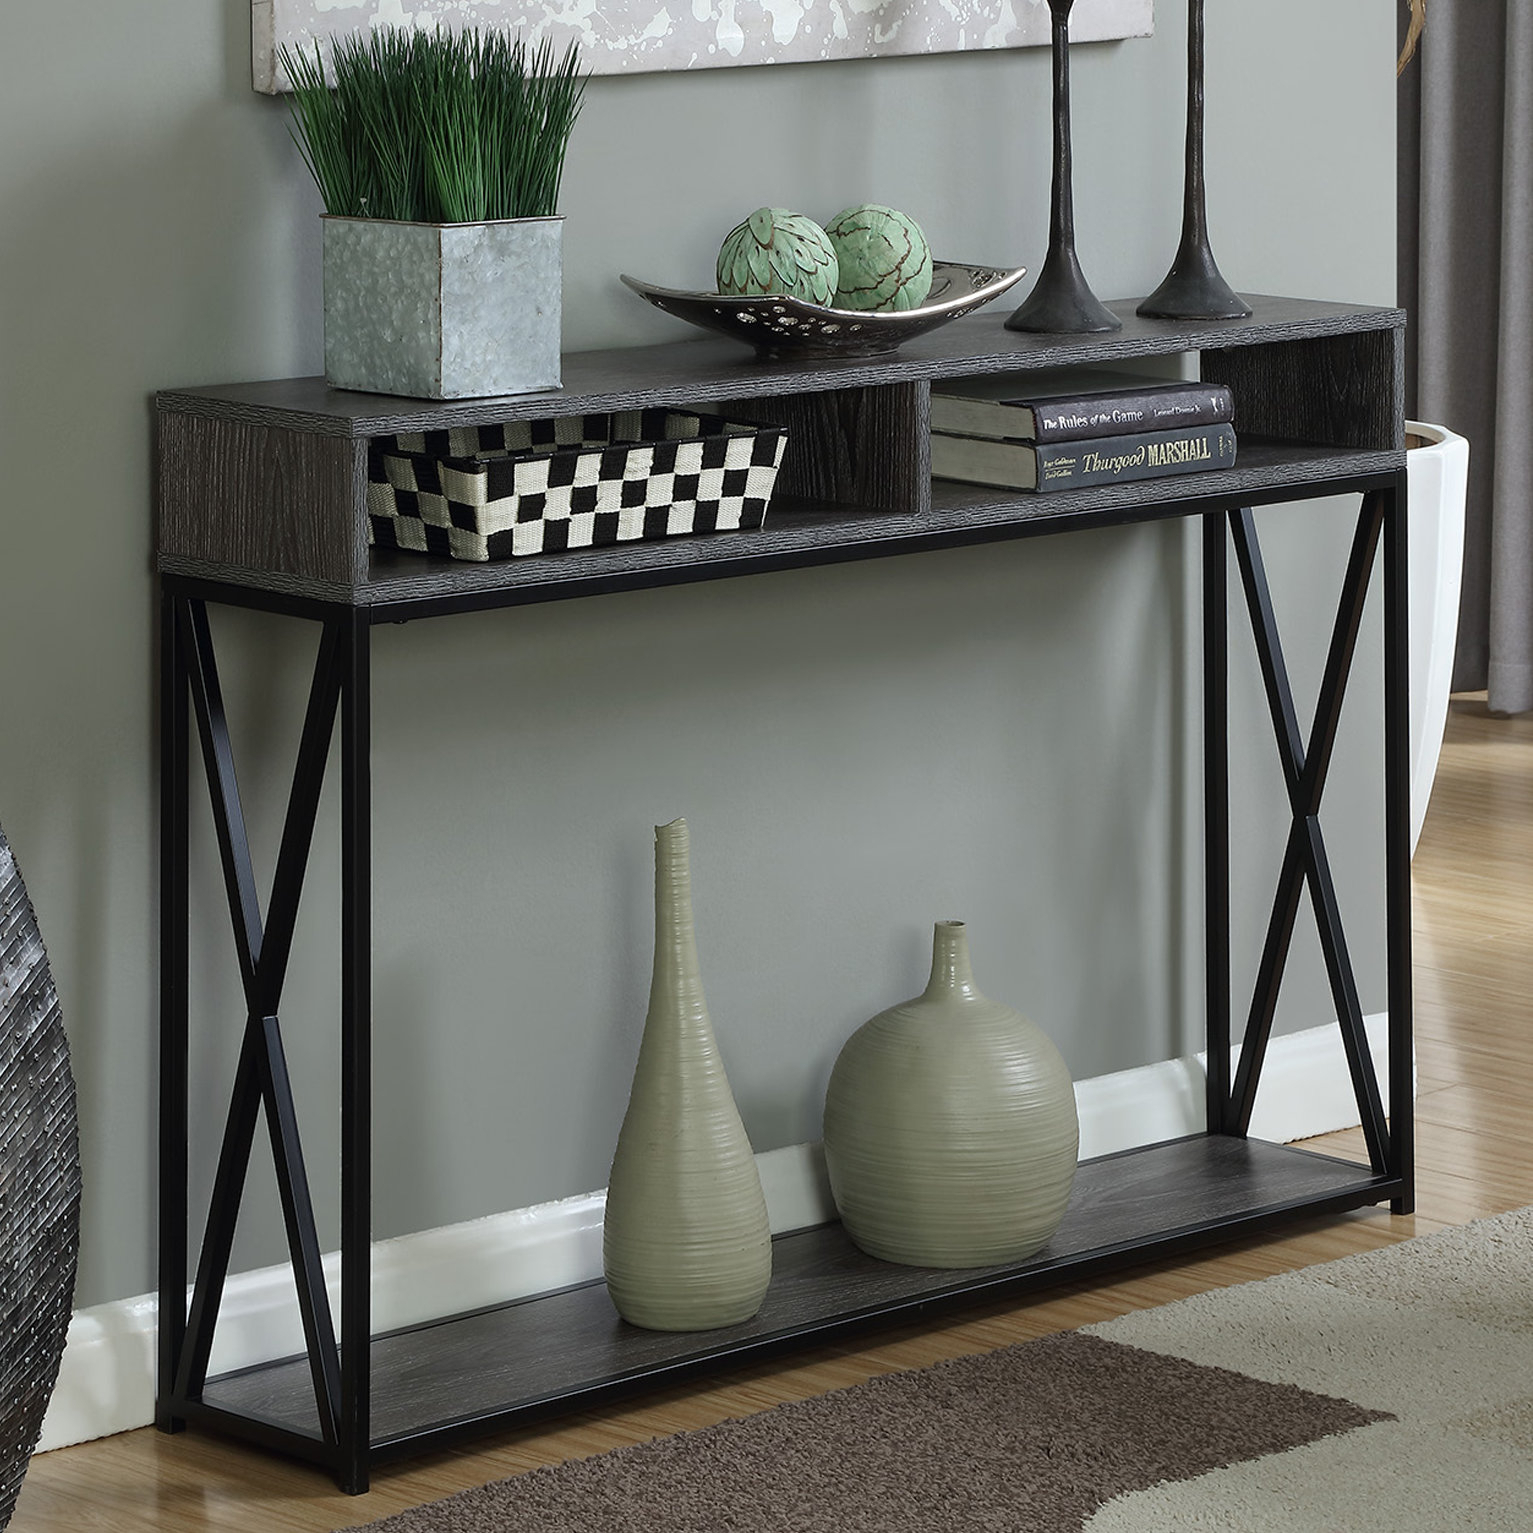 Narrow Console Tables You'll Love | Wayfair (View 9 of 30)